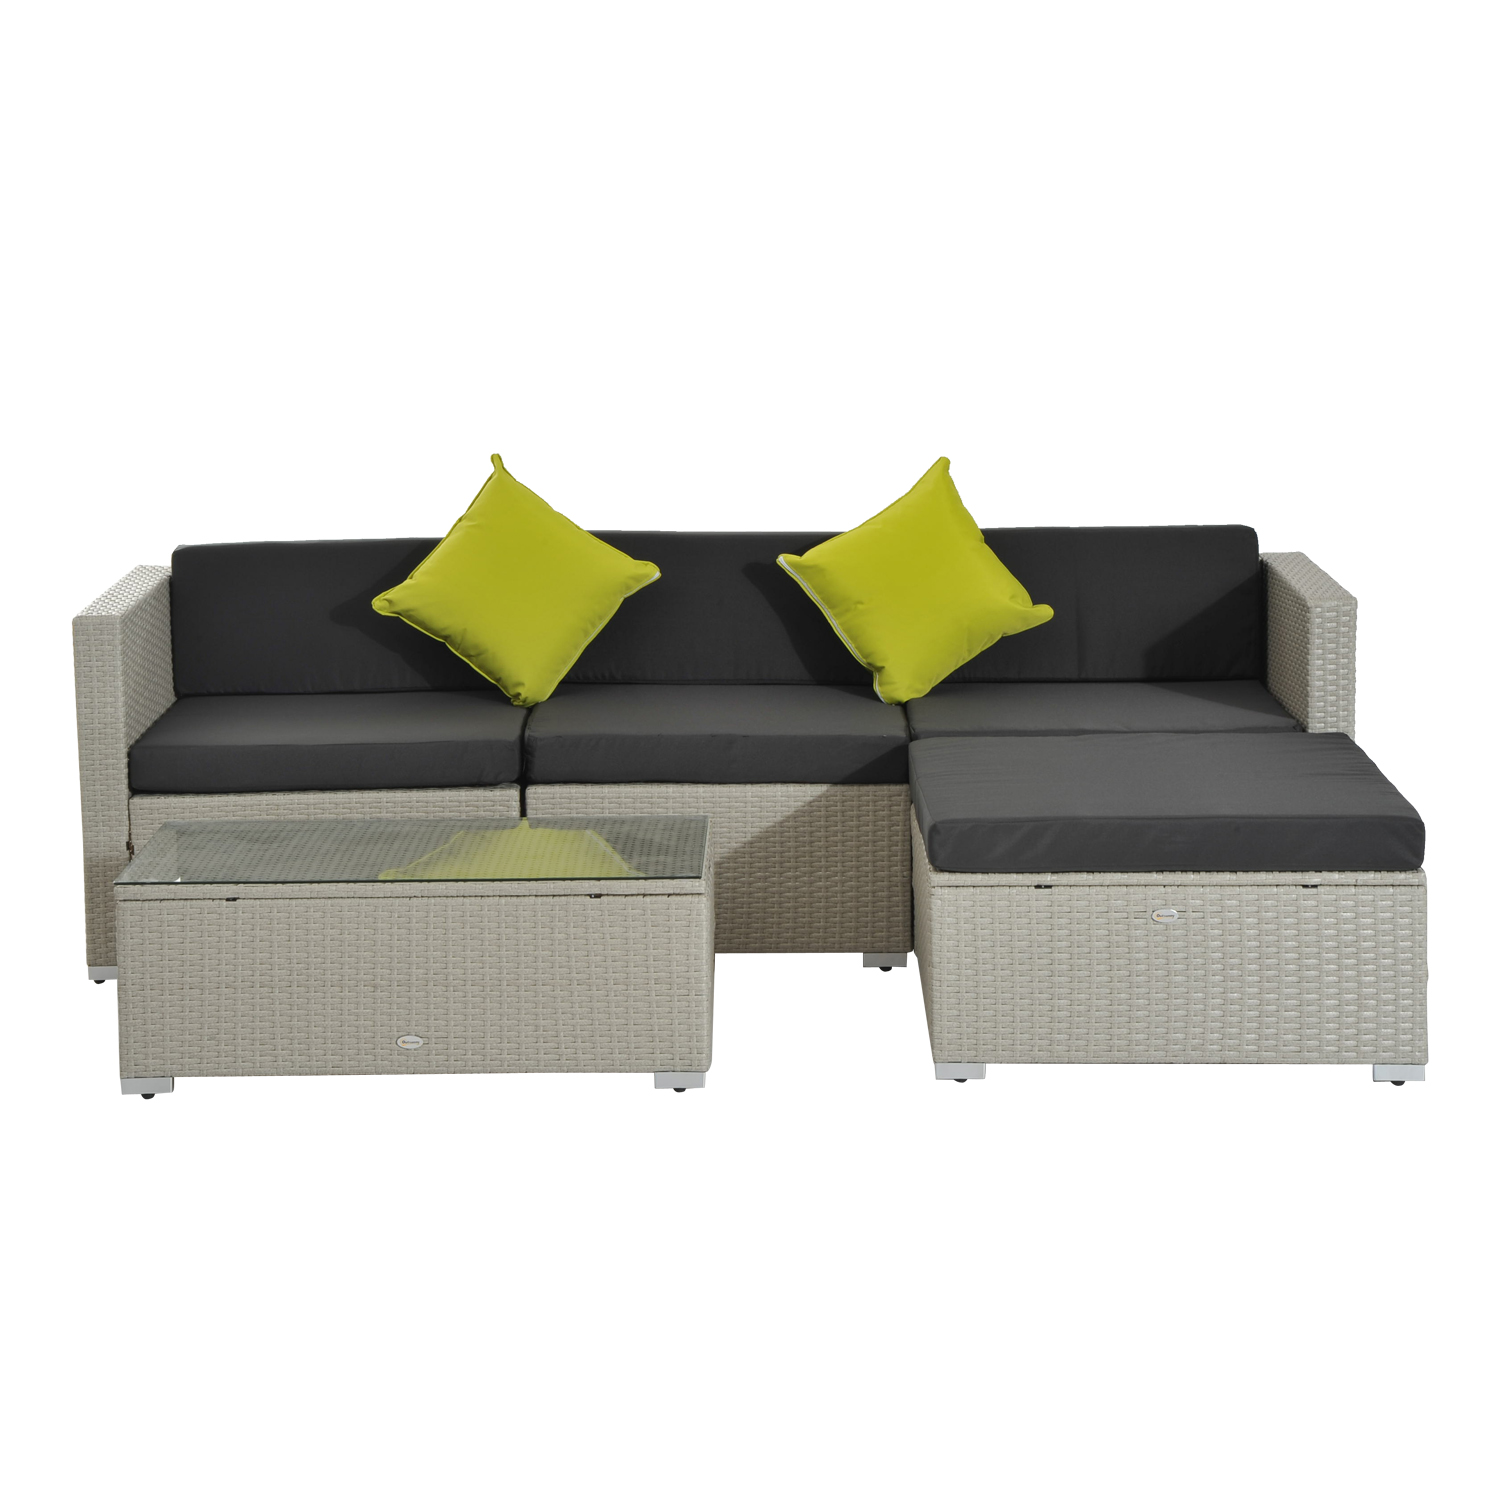 Image of £319.99 Outsunny 5pc Wicker Furniture Rattan Sofa Set-Grey / Conservatory Garden Corner Outdoor Patio Set Grey Coffee Table 860-017GY 5056029898888